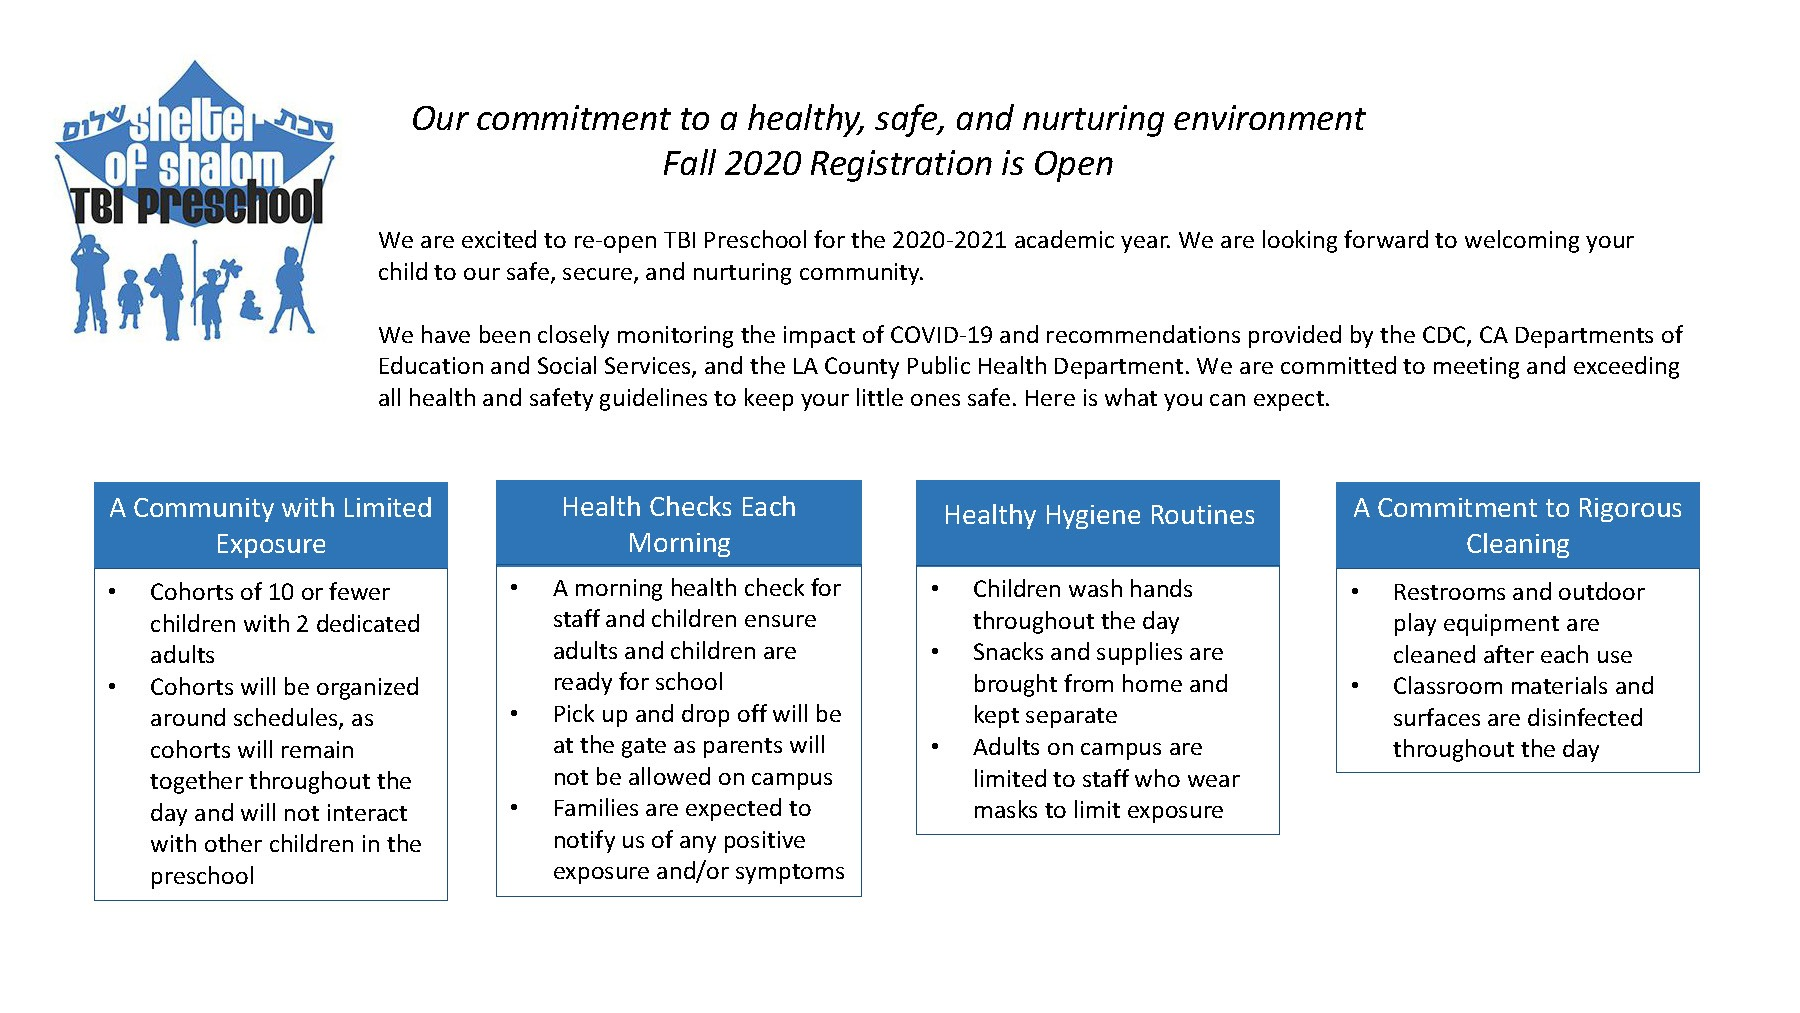 Fall 2020 Covid-19 Reopening Plan